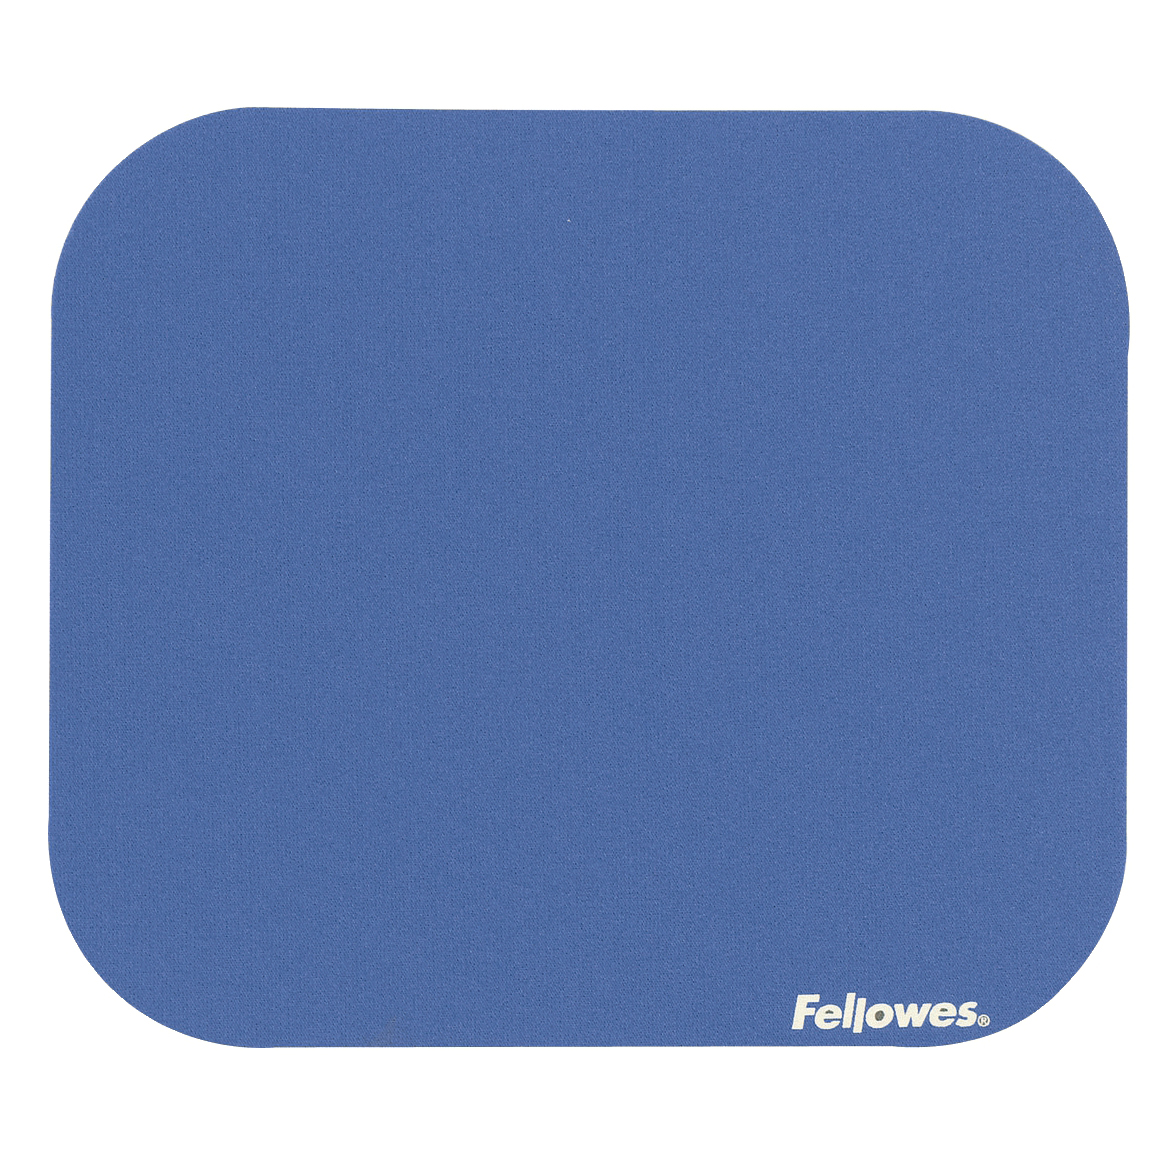 Mouse pads Fellowes Mousepad Solid Colour Blue Ref 58021-06